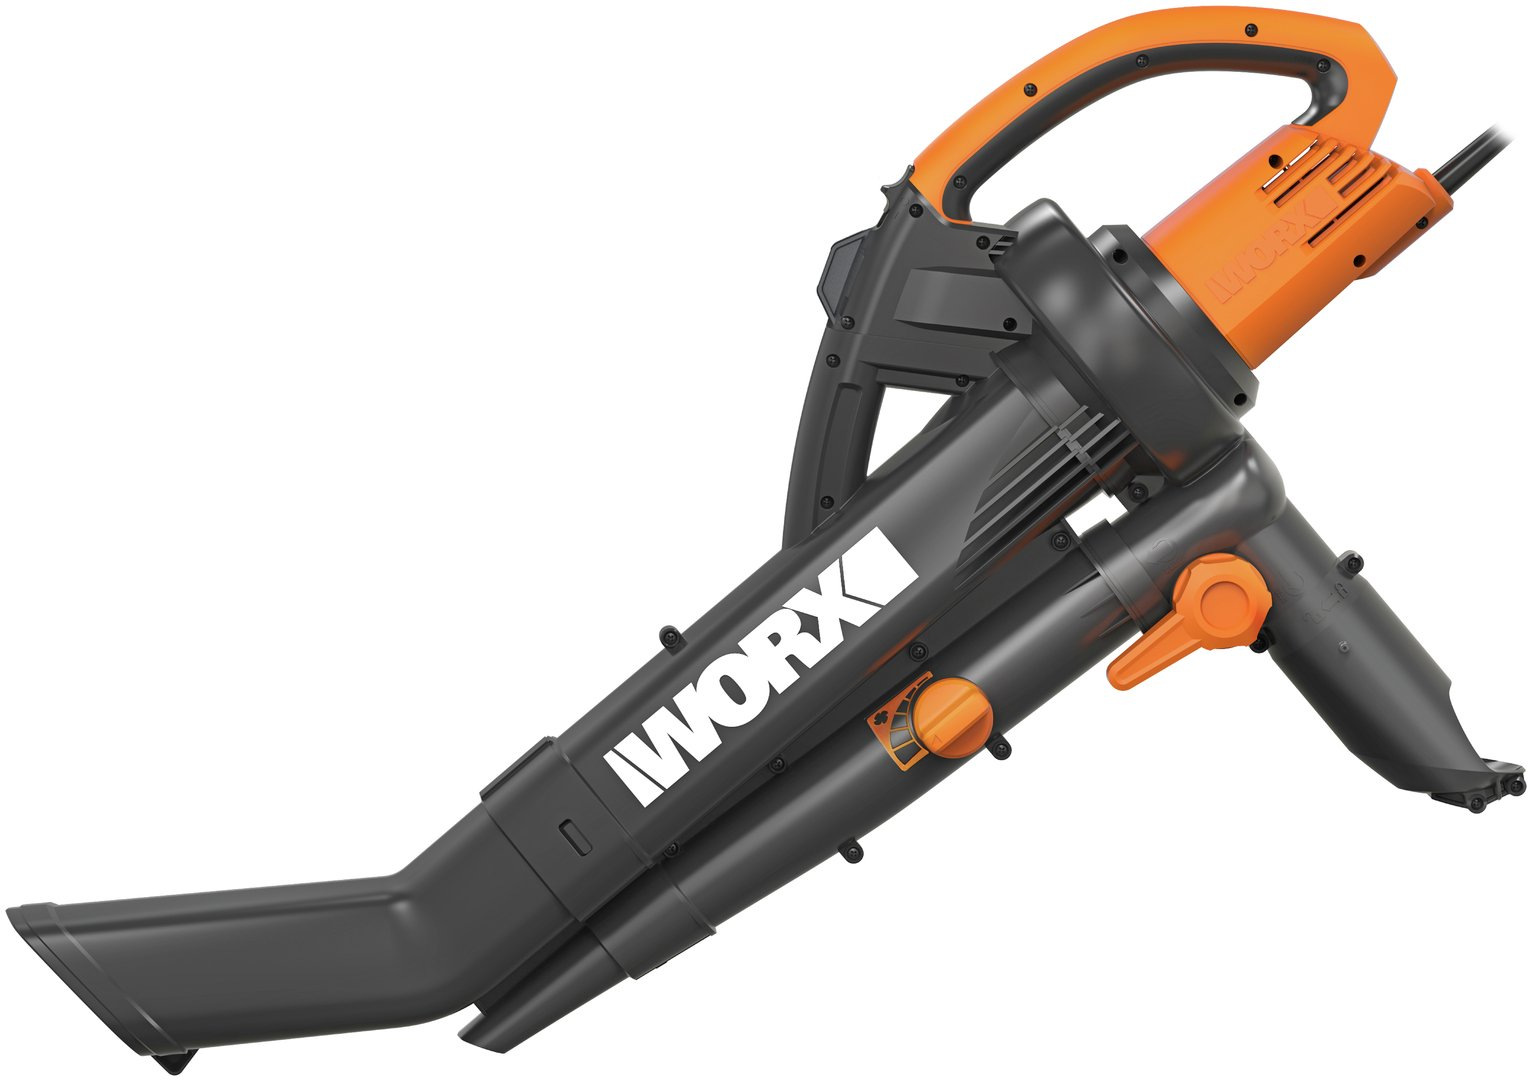 worx corded wg505 trivac garden blower and vacuum review. Black Bedroom Furniture Sets. Home Design Ideas